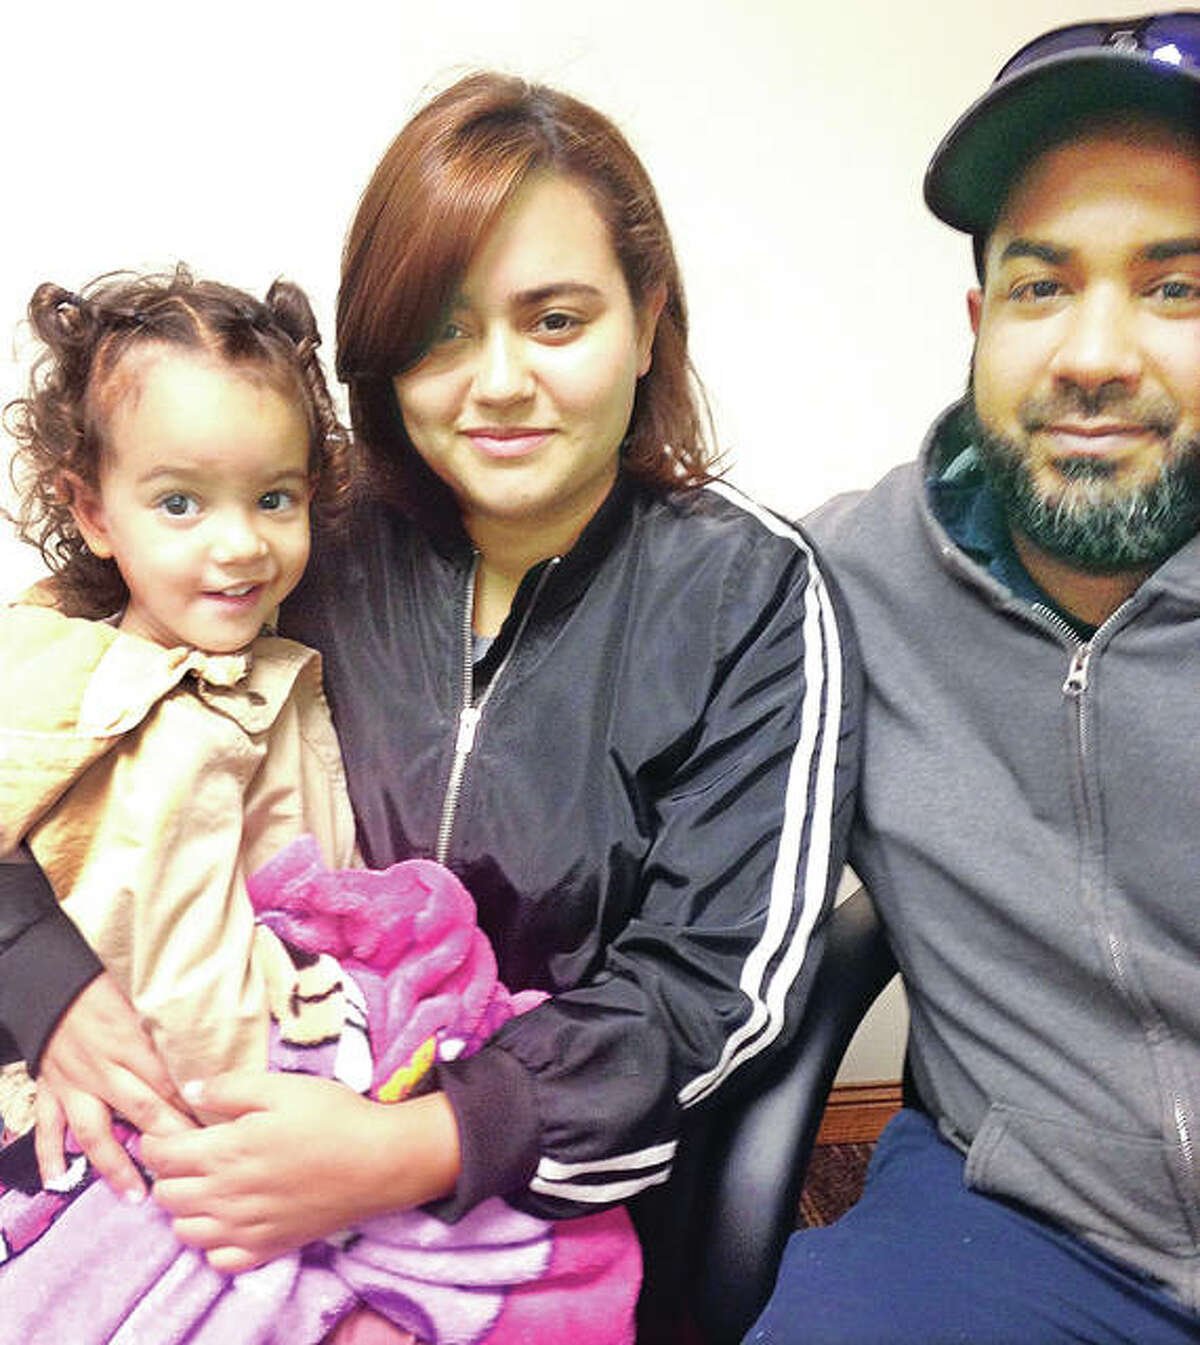 Victoria Molina, 2, and her mother Kellary Santos, 21, evacuated from Puerto Rico after Hurricane Maria and are starting a new life in Alton. They are living with Santos' father, Kelin Santos, 41, at Alton Acres public housing complex, where eight other Puerto Rican evacuees also resettled.